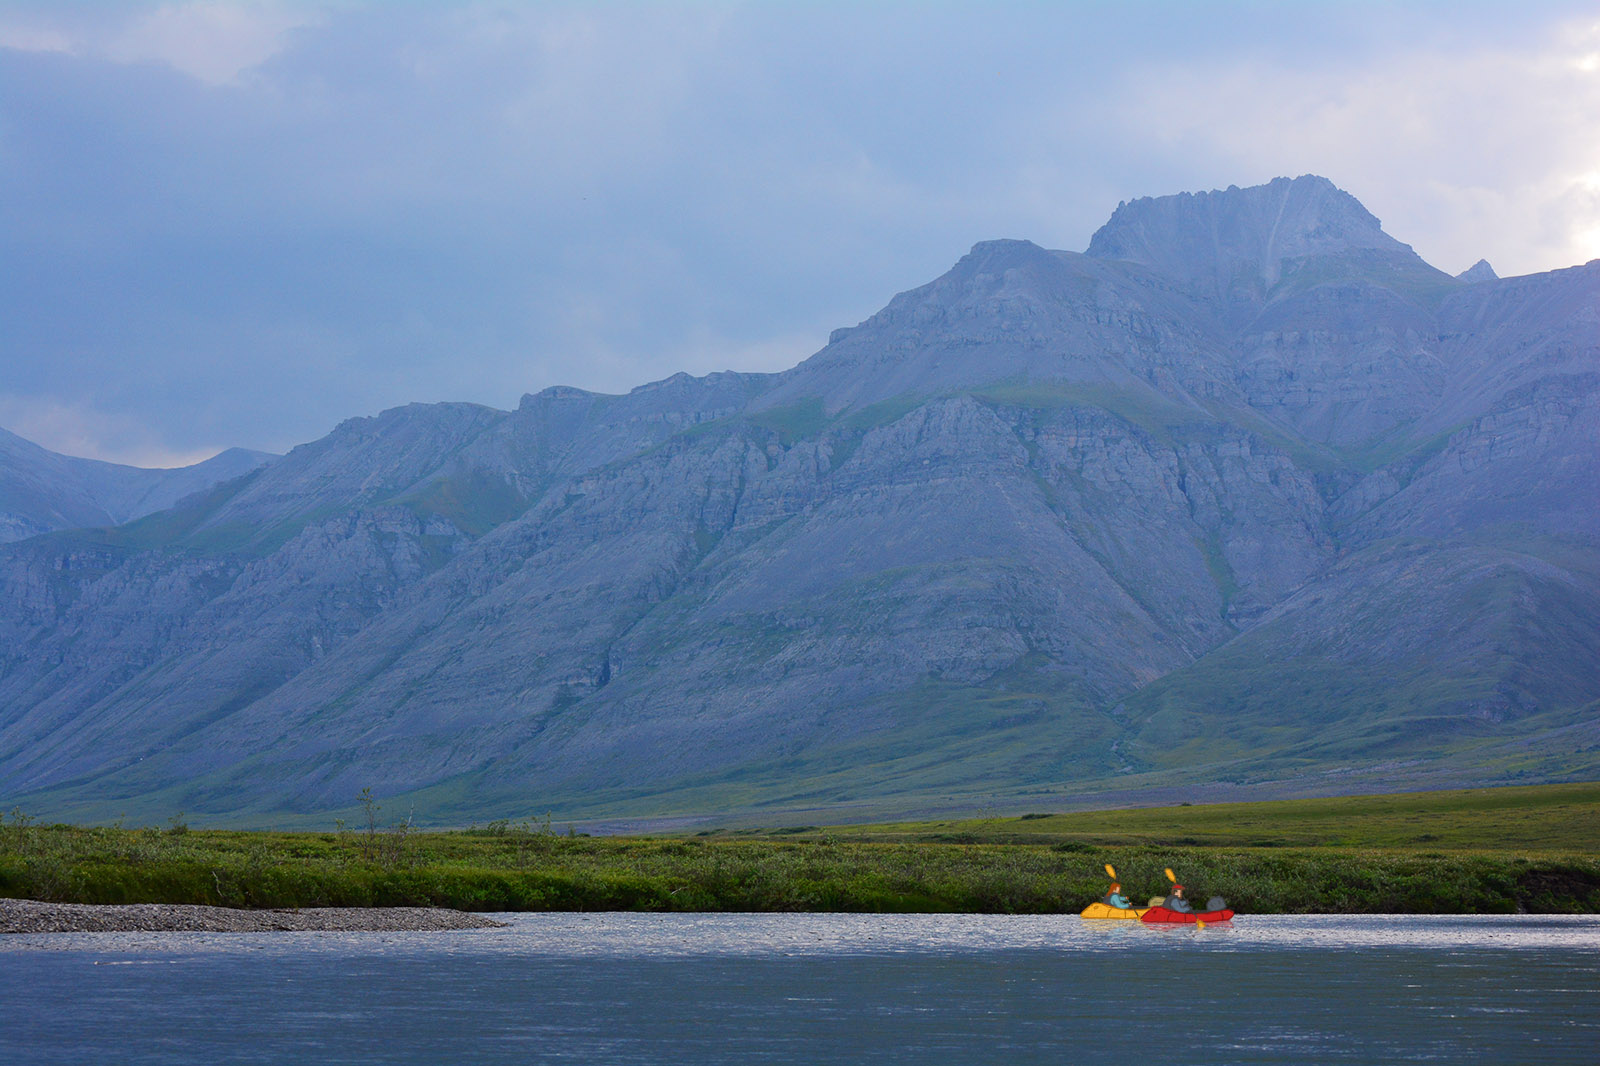 Brett and Chelsea packraft down the Anaktuvuk River below the Brooks Range Mountains in Alaska